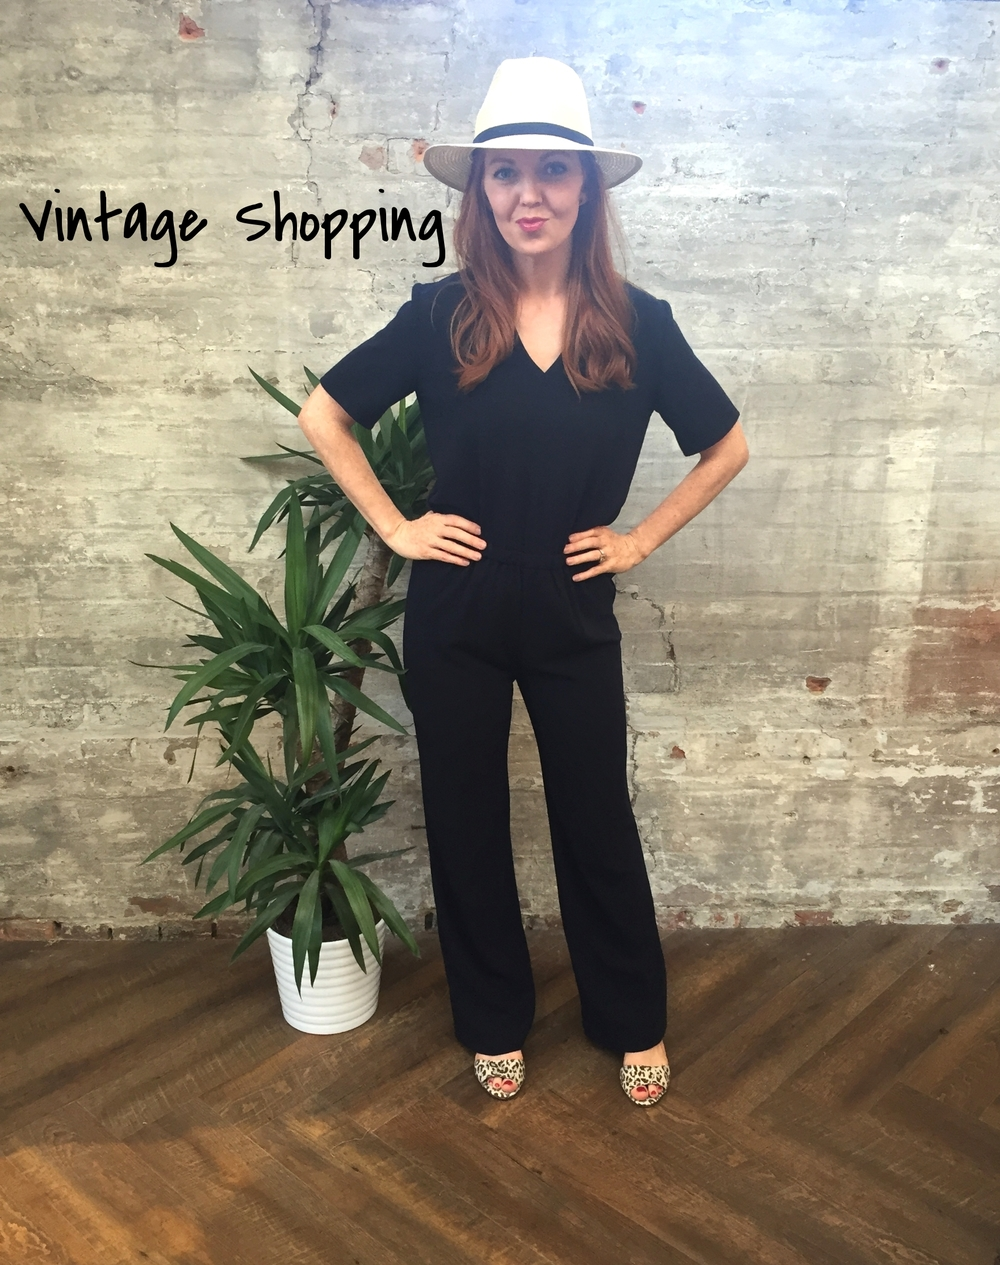 Toronto has a vibrant vintage scene, full of unique shops, markets and estate sales. Take advantage of the warm weather months to explore hidden gems from all sides of the city.  Grab an easy, fashionable outfit paired with statement accessory and you're good to go - because you never know who's street style photo you could end up in!  Just Female Jumpsuit $218 Brixton Straw Hat $95  Tip: Check out the Vintage Crawl and other arts tours this summer for free fun!